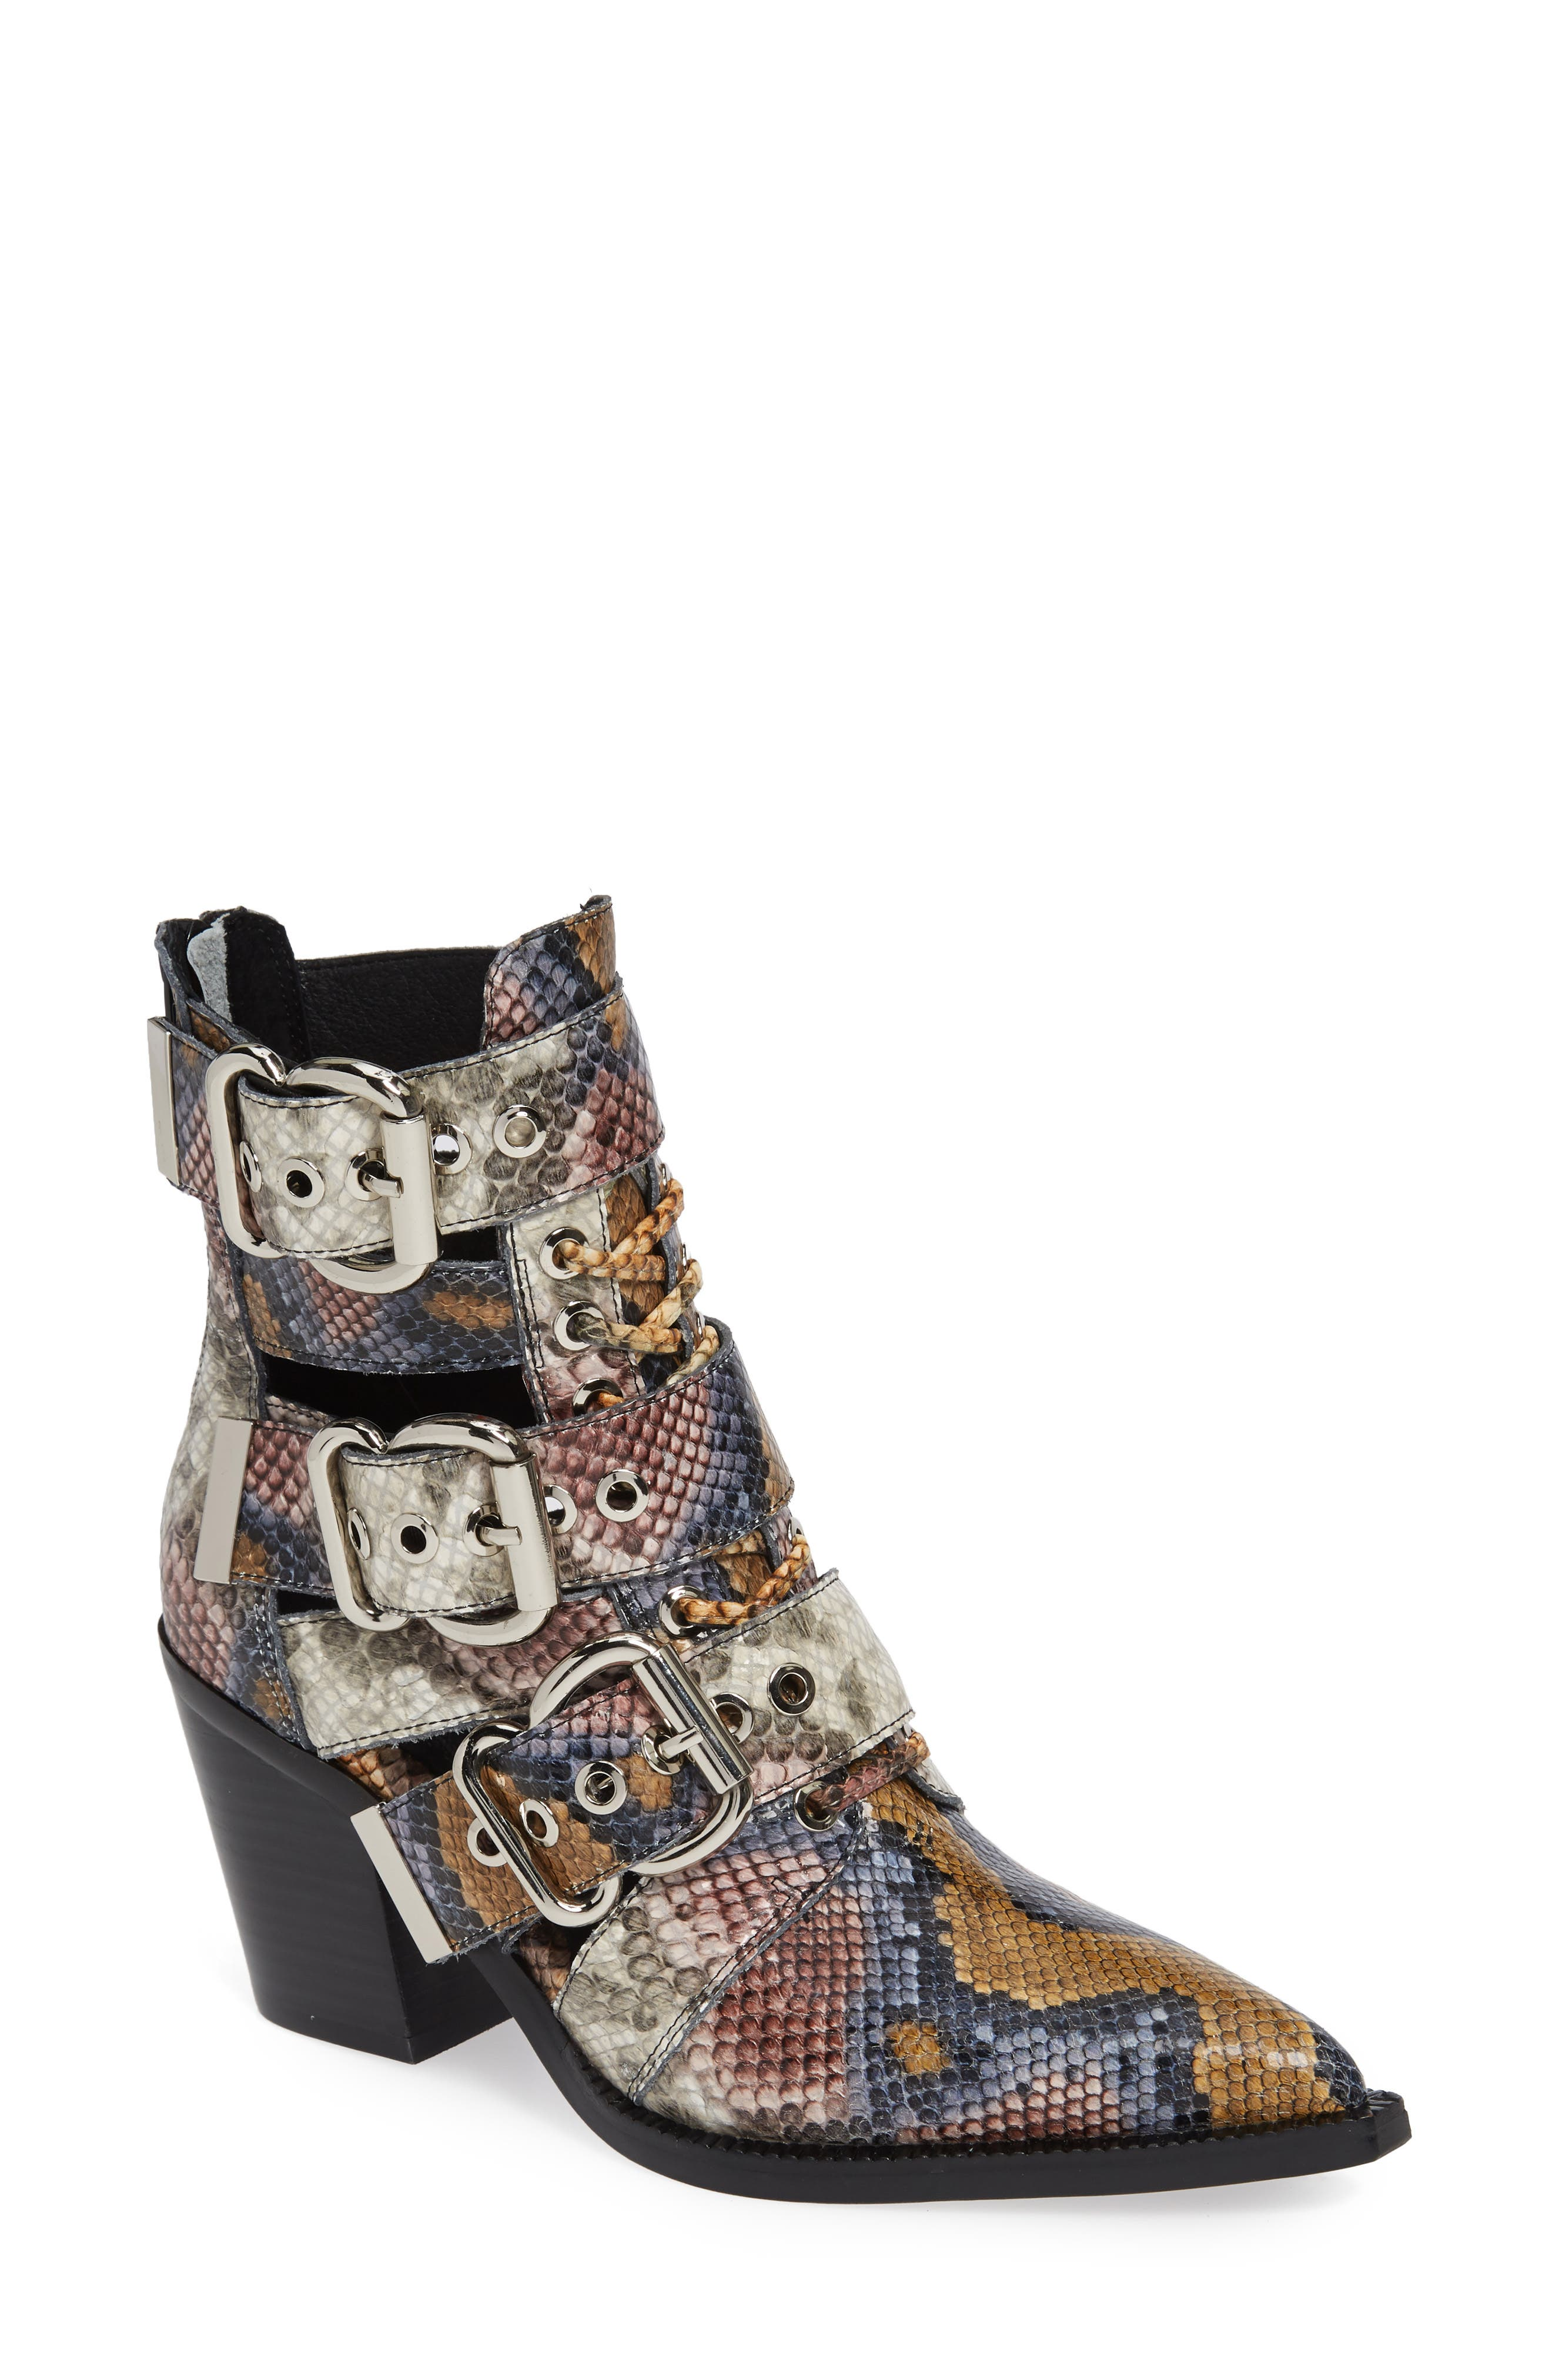 Caceres Bootie,                         Main,                         color, GREY WINE SNAKE PRINT